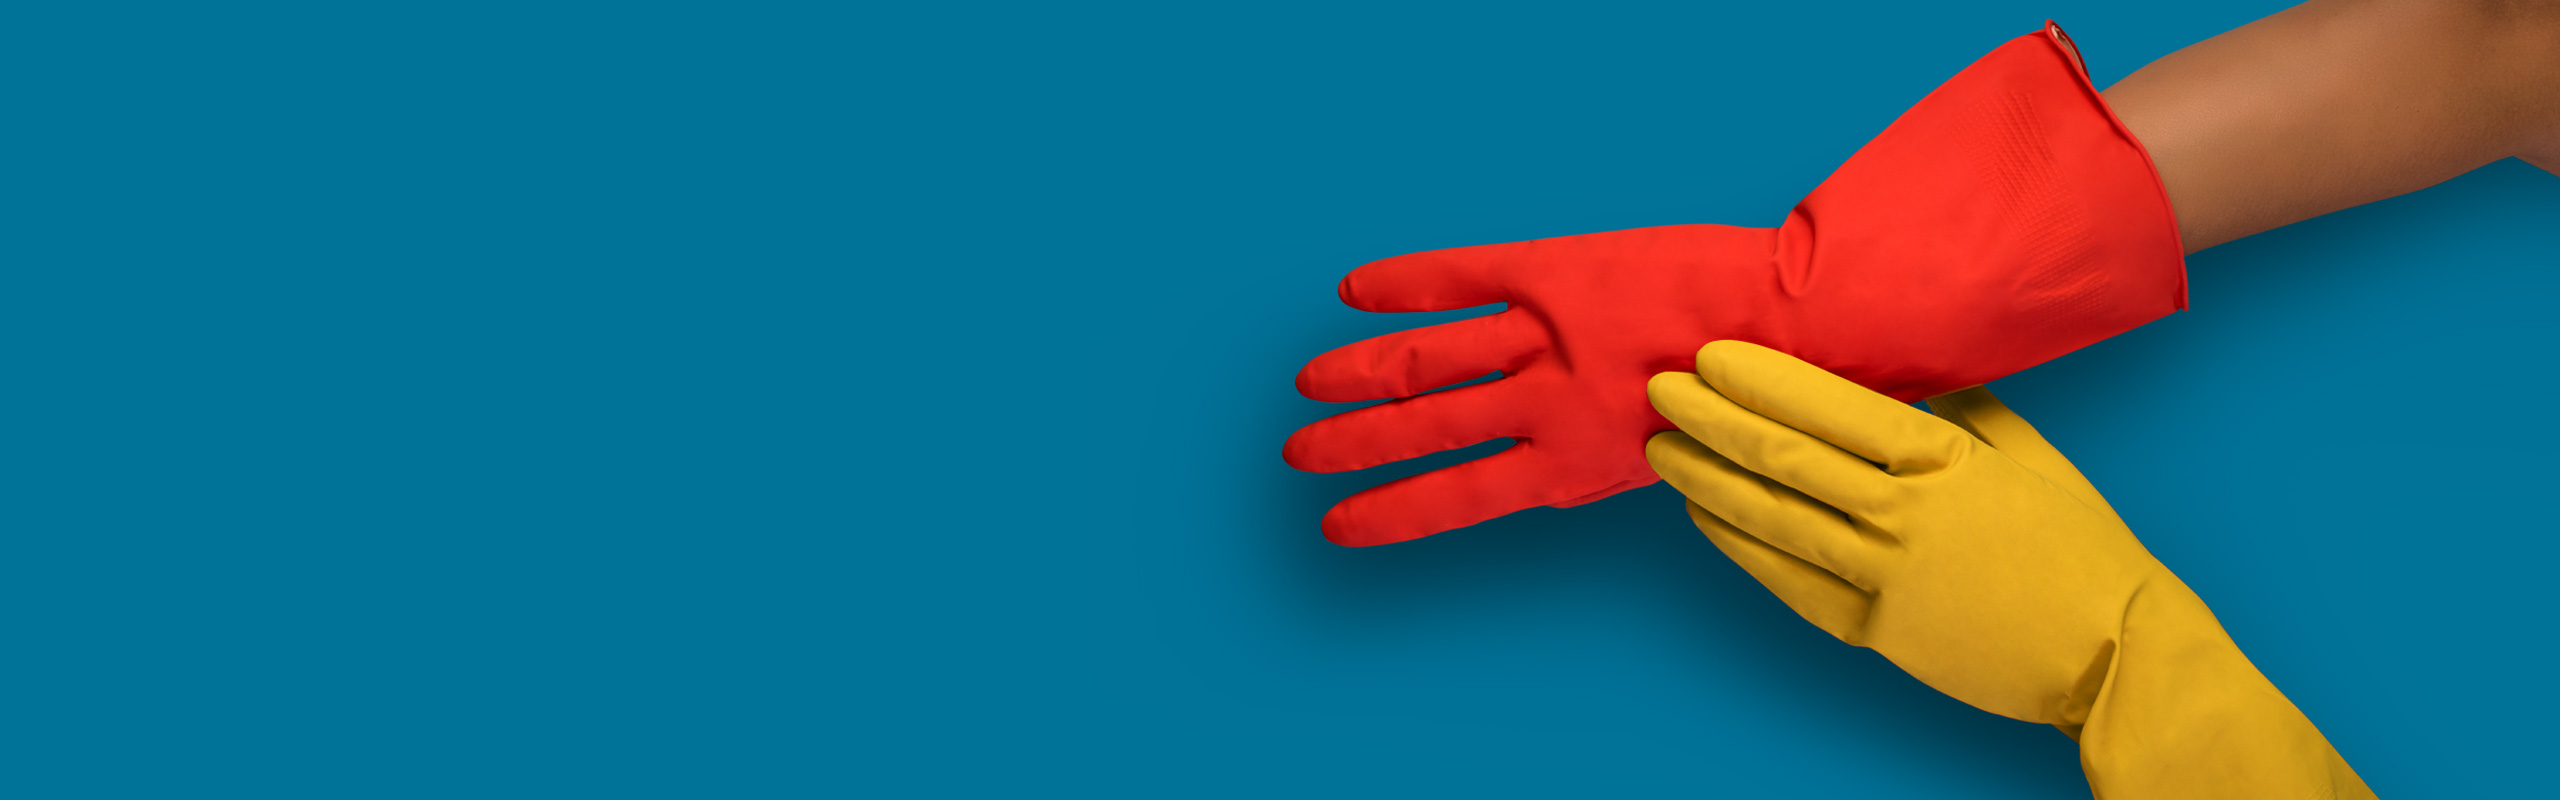 Plastic glove protection for your hand